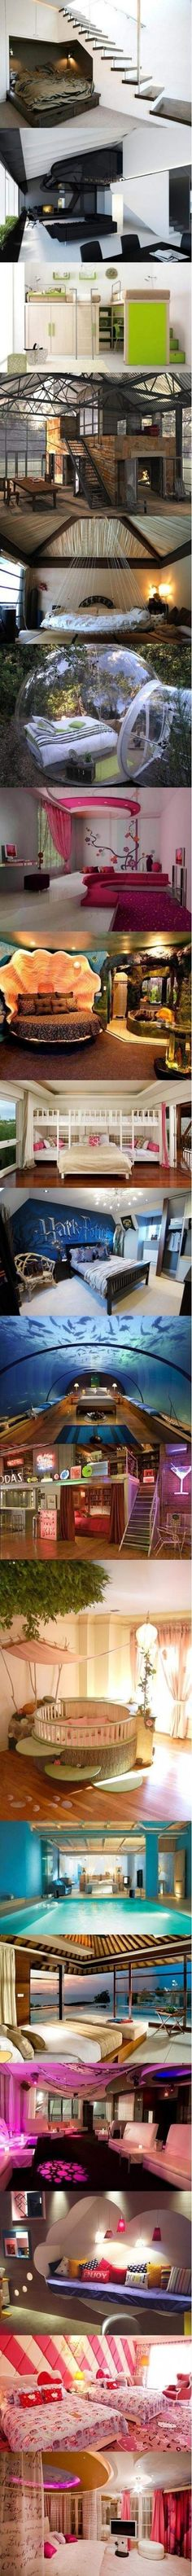 Dream Bedrooms - funny pictures - funny photos - funny images - funny pics - funny quotes - #lol #humor #funny